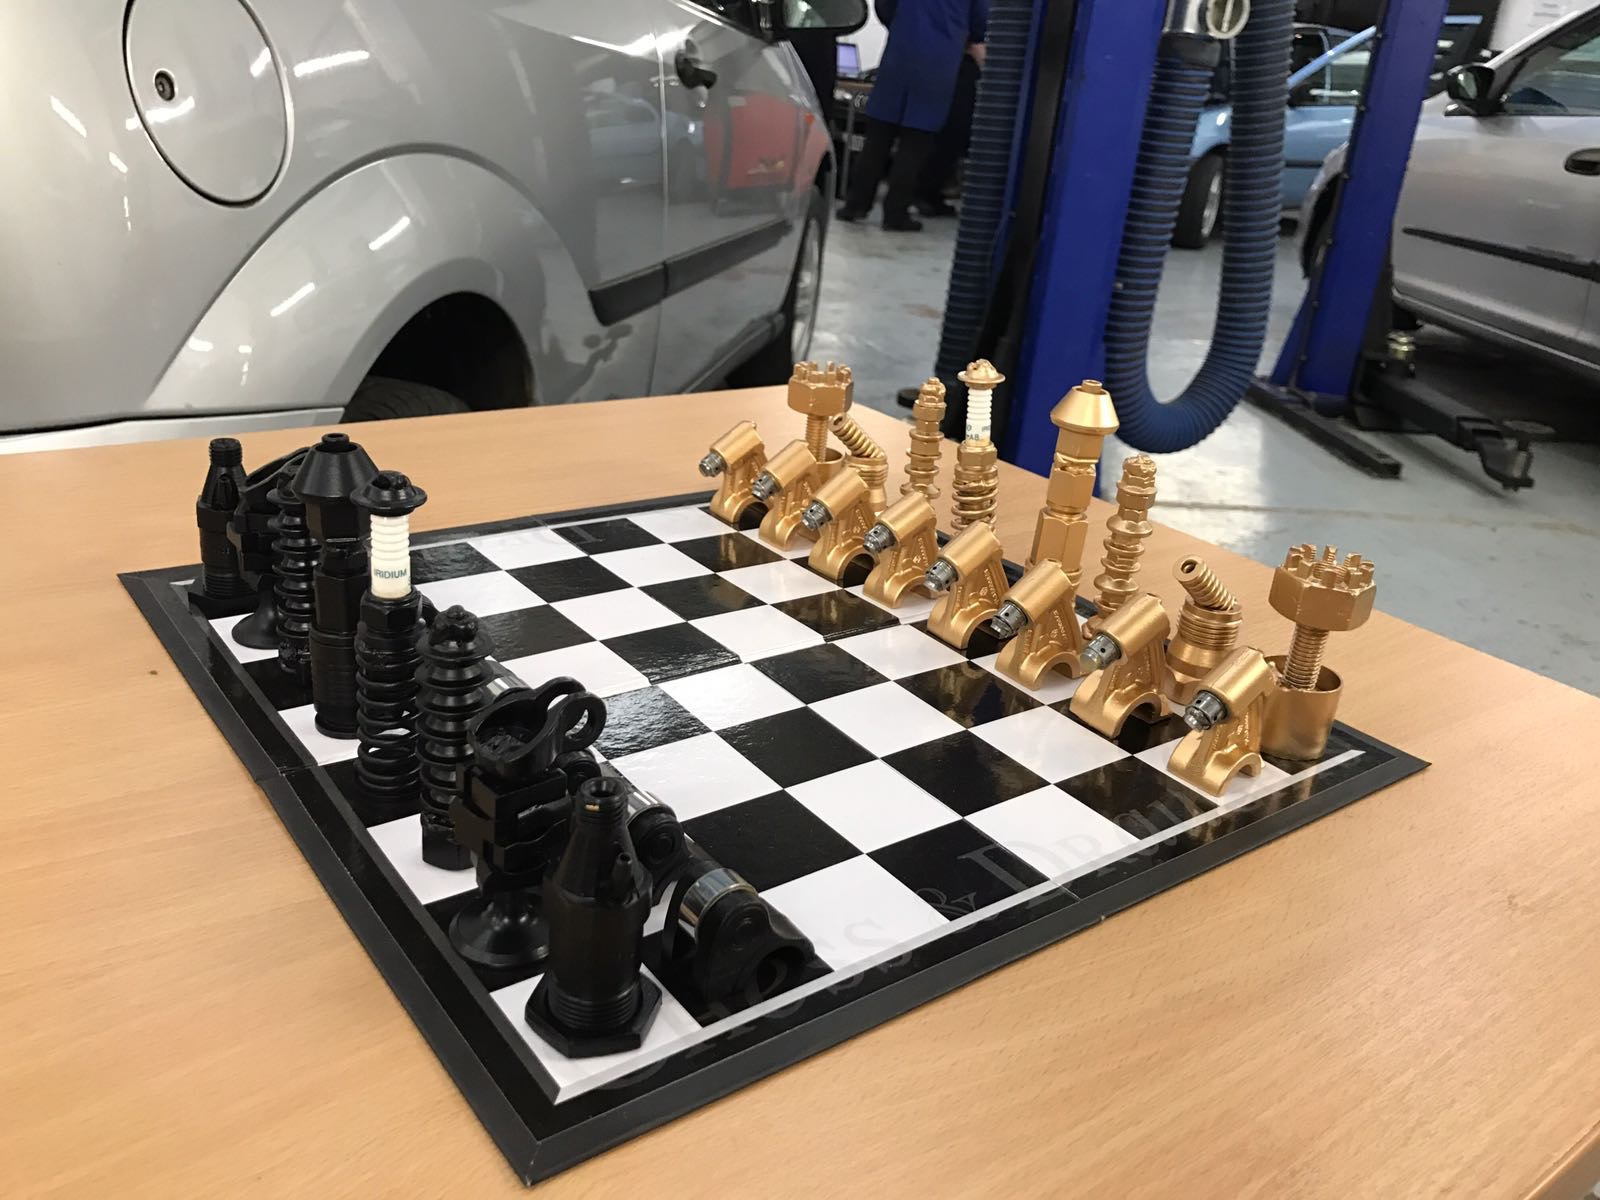 Chess board created with recycled car parts